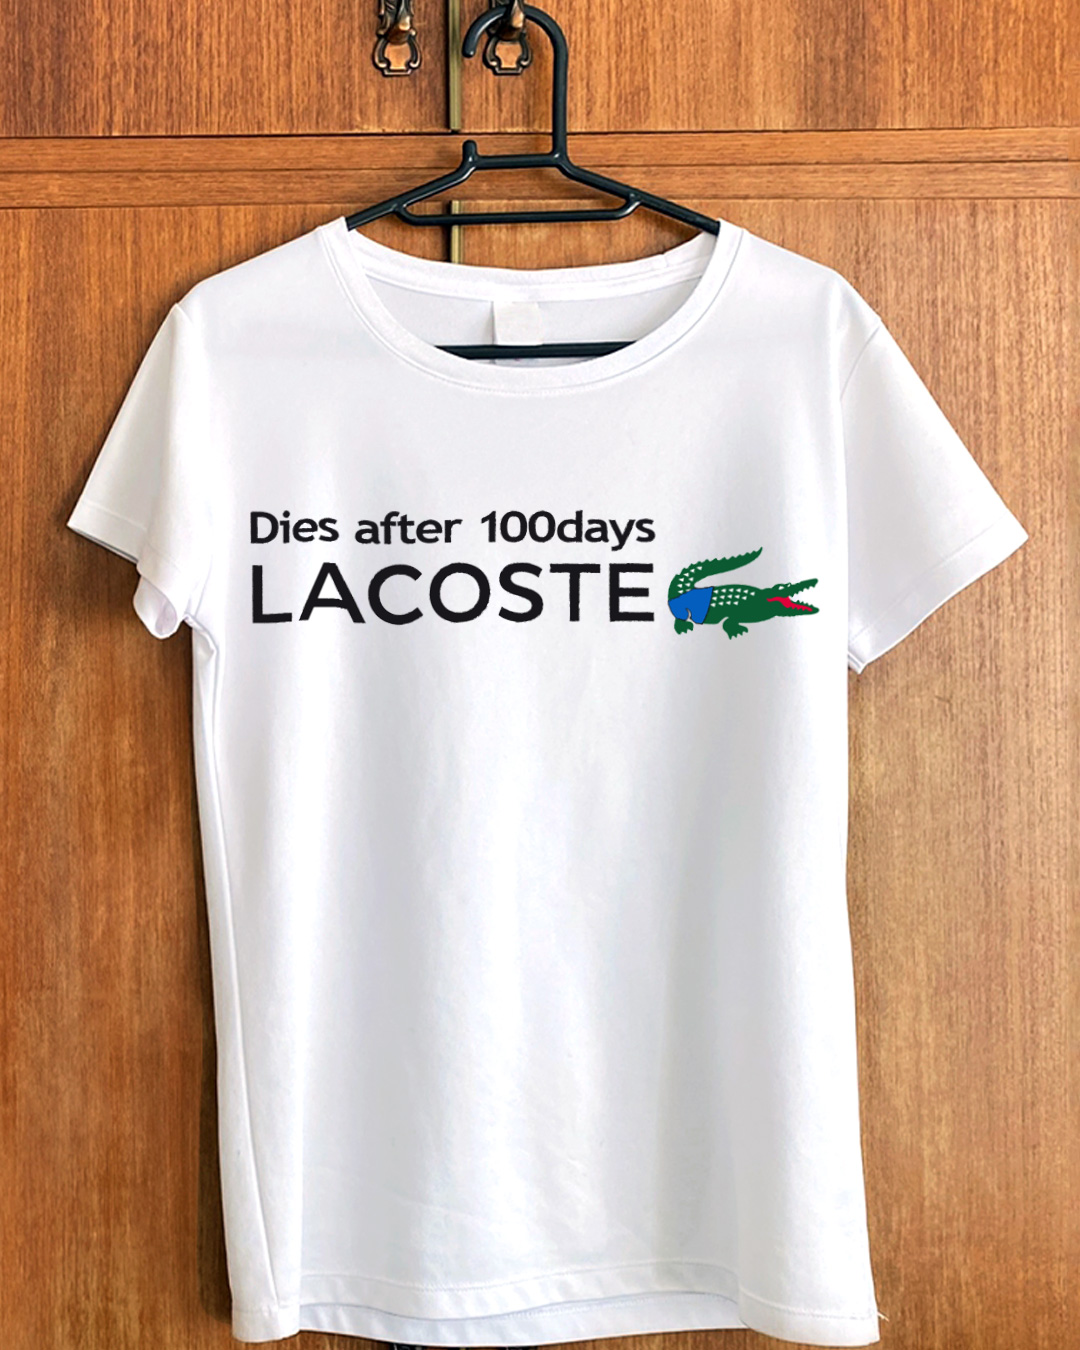 「Dies after 100days LACOSTE」のTシャツ